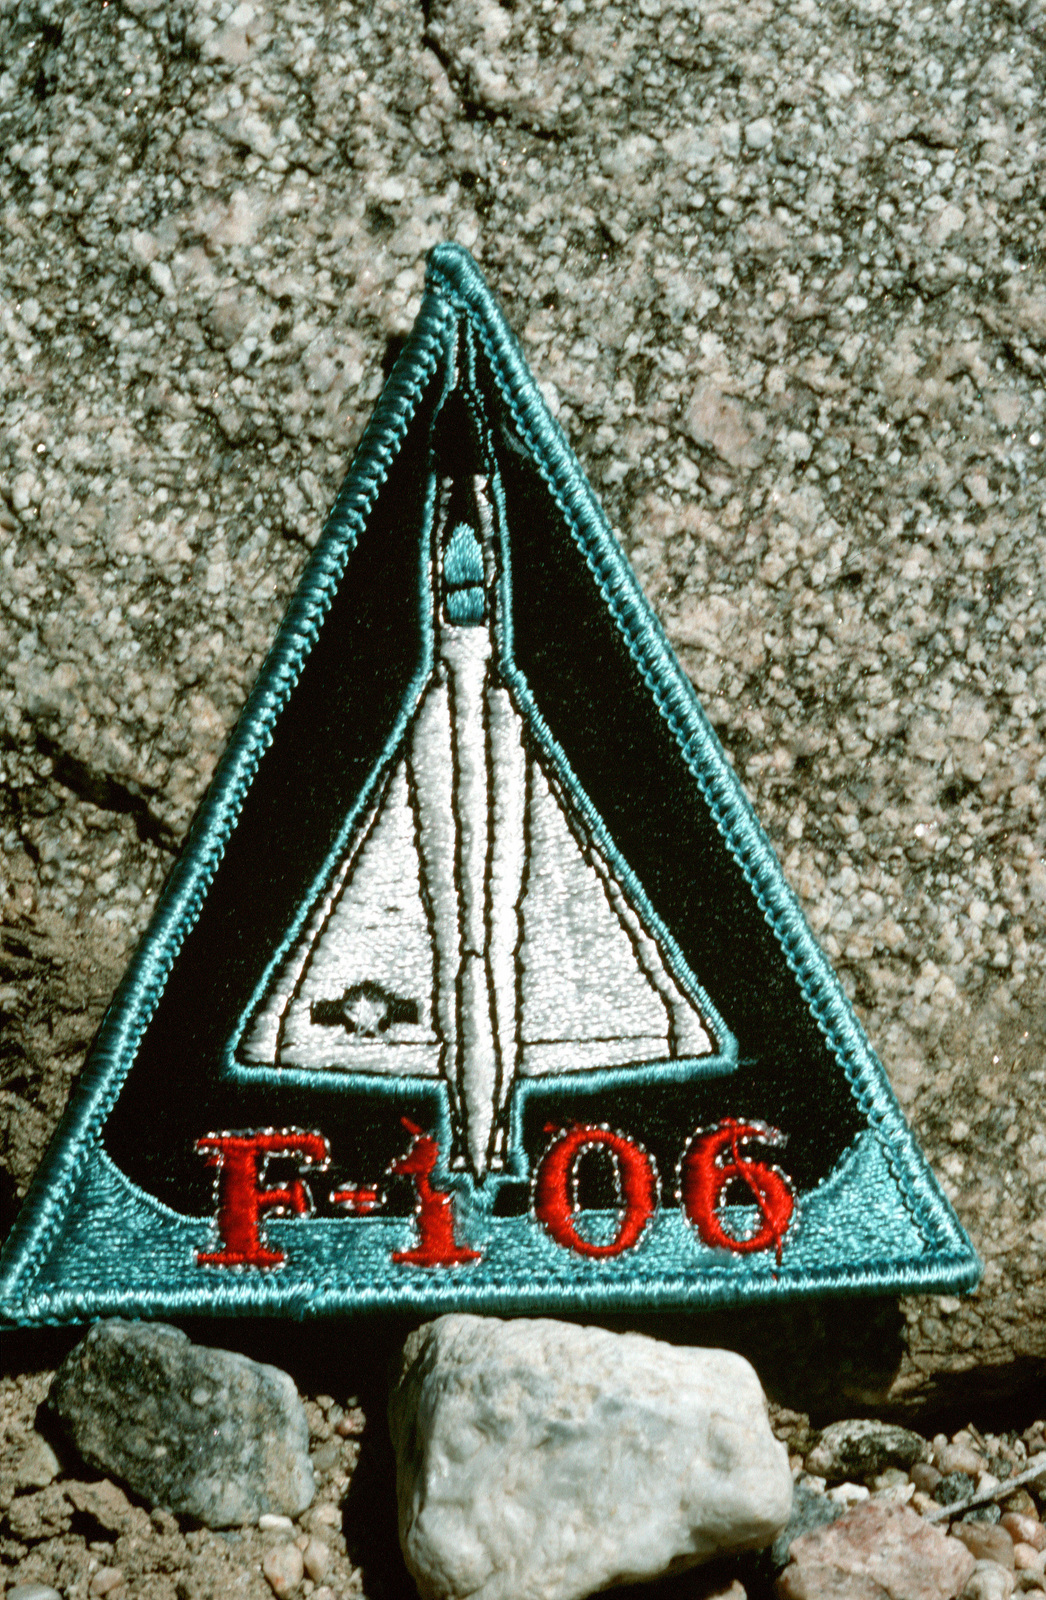 A close-up view of a patch with an F-106 Delta Dart aircraft embroidered on it